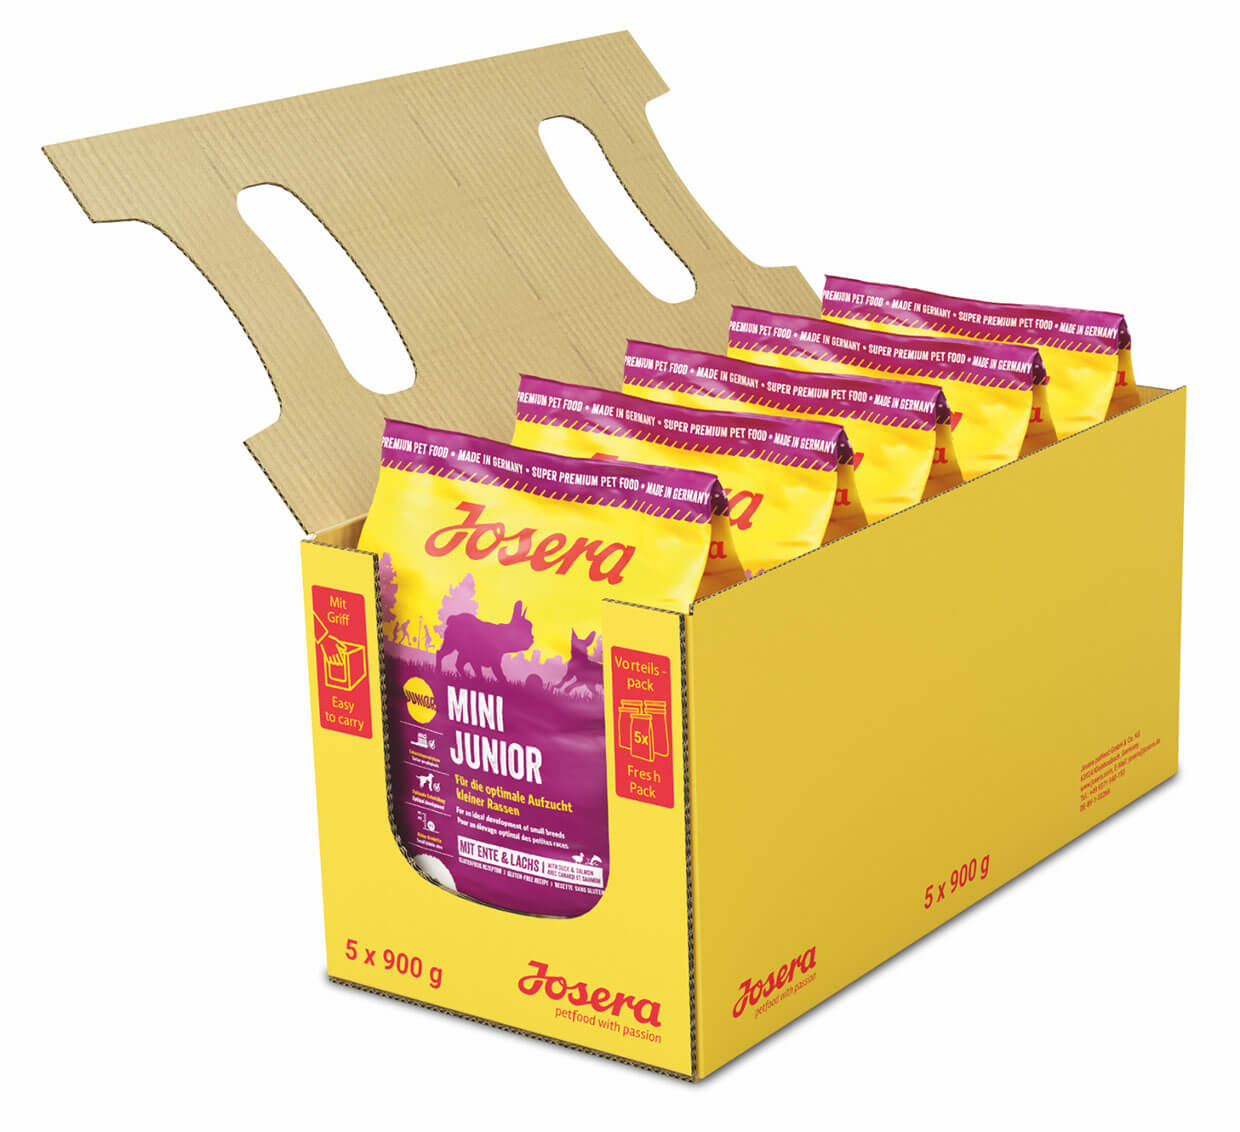 josera-dog-food-minijunior-5x900g